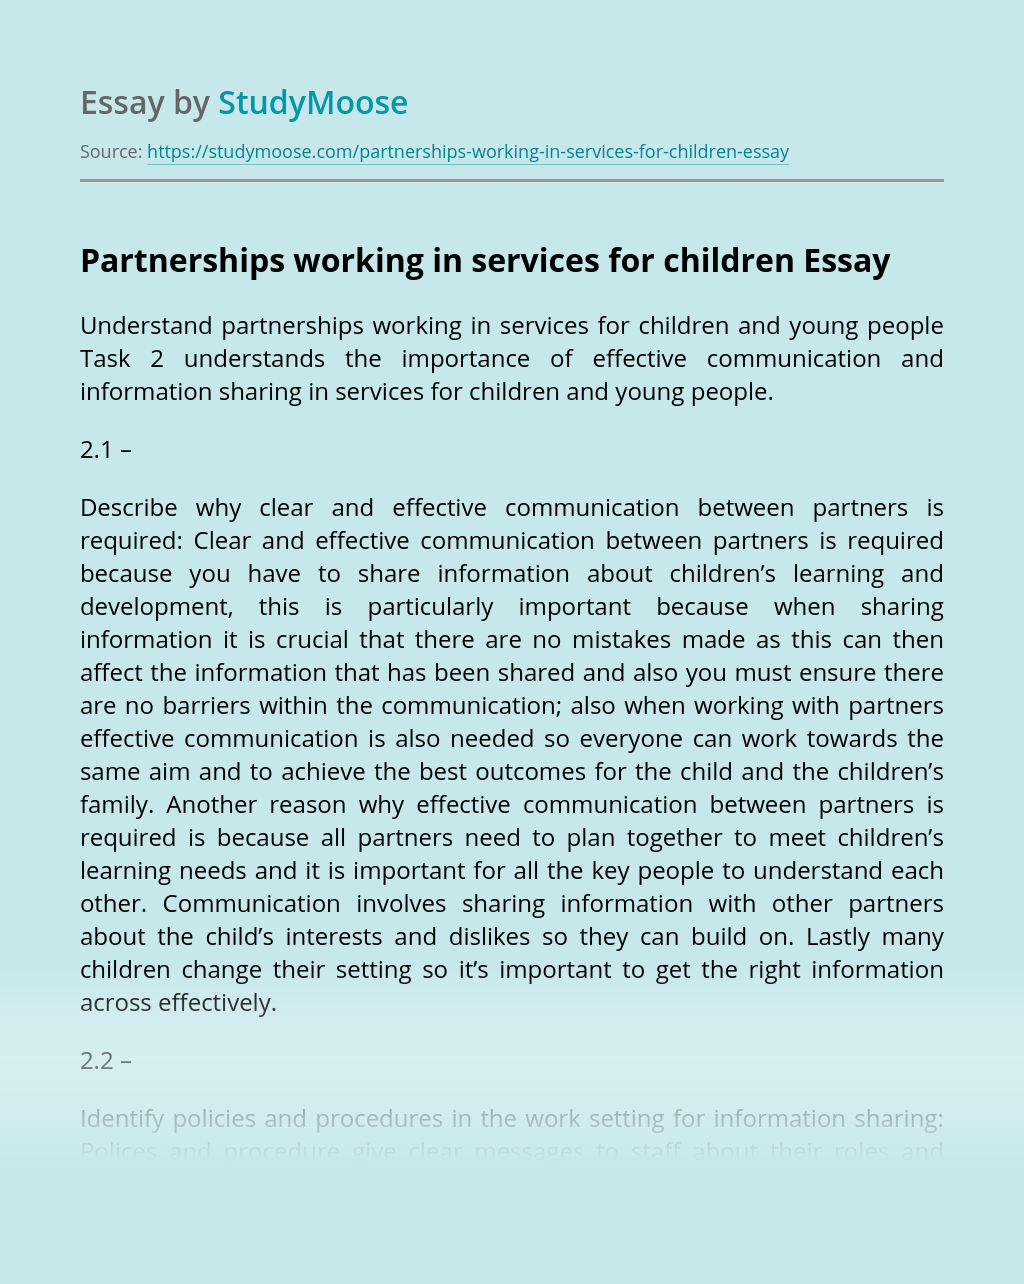 Partnerships working in services for children